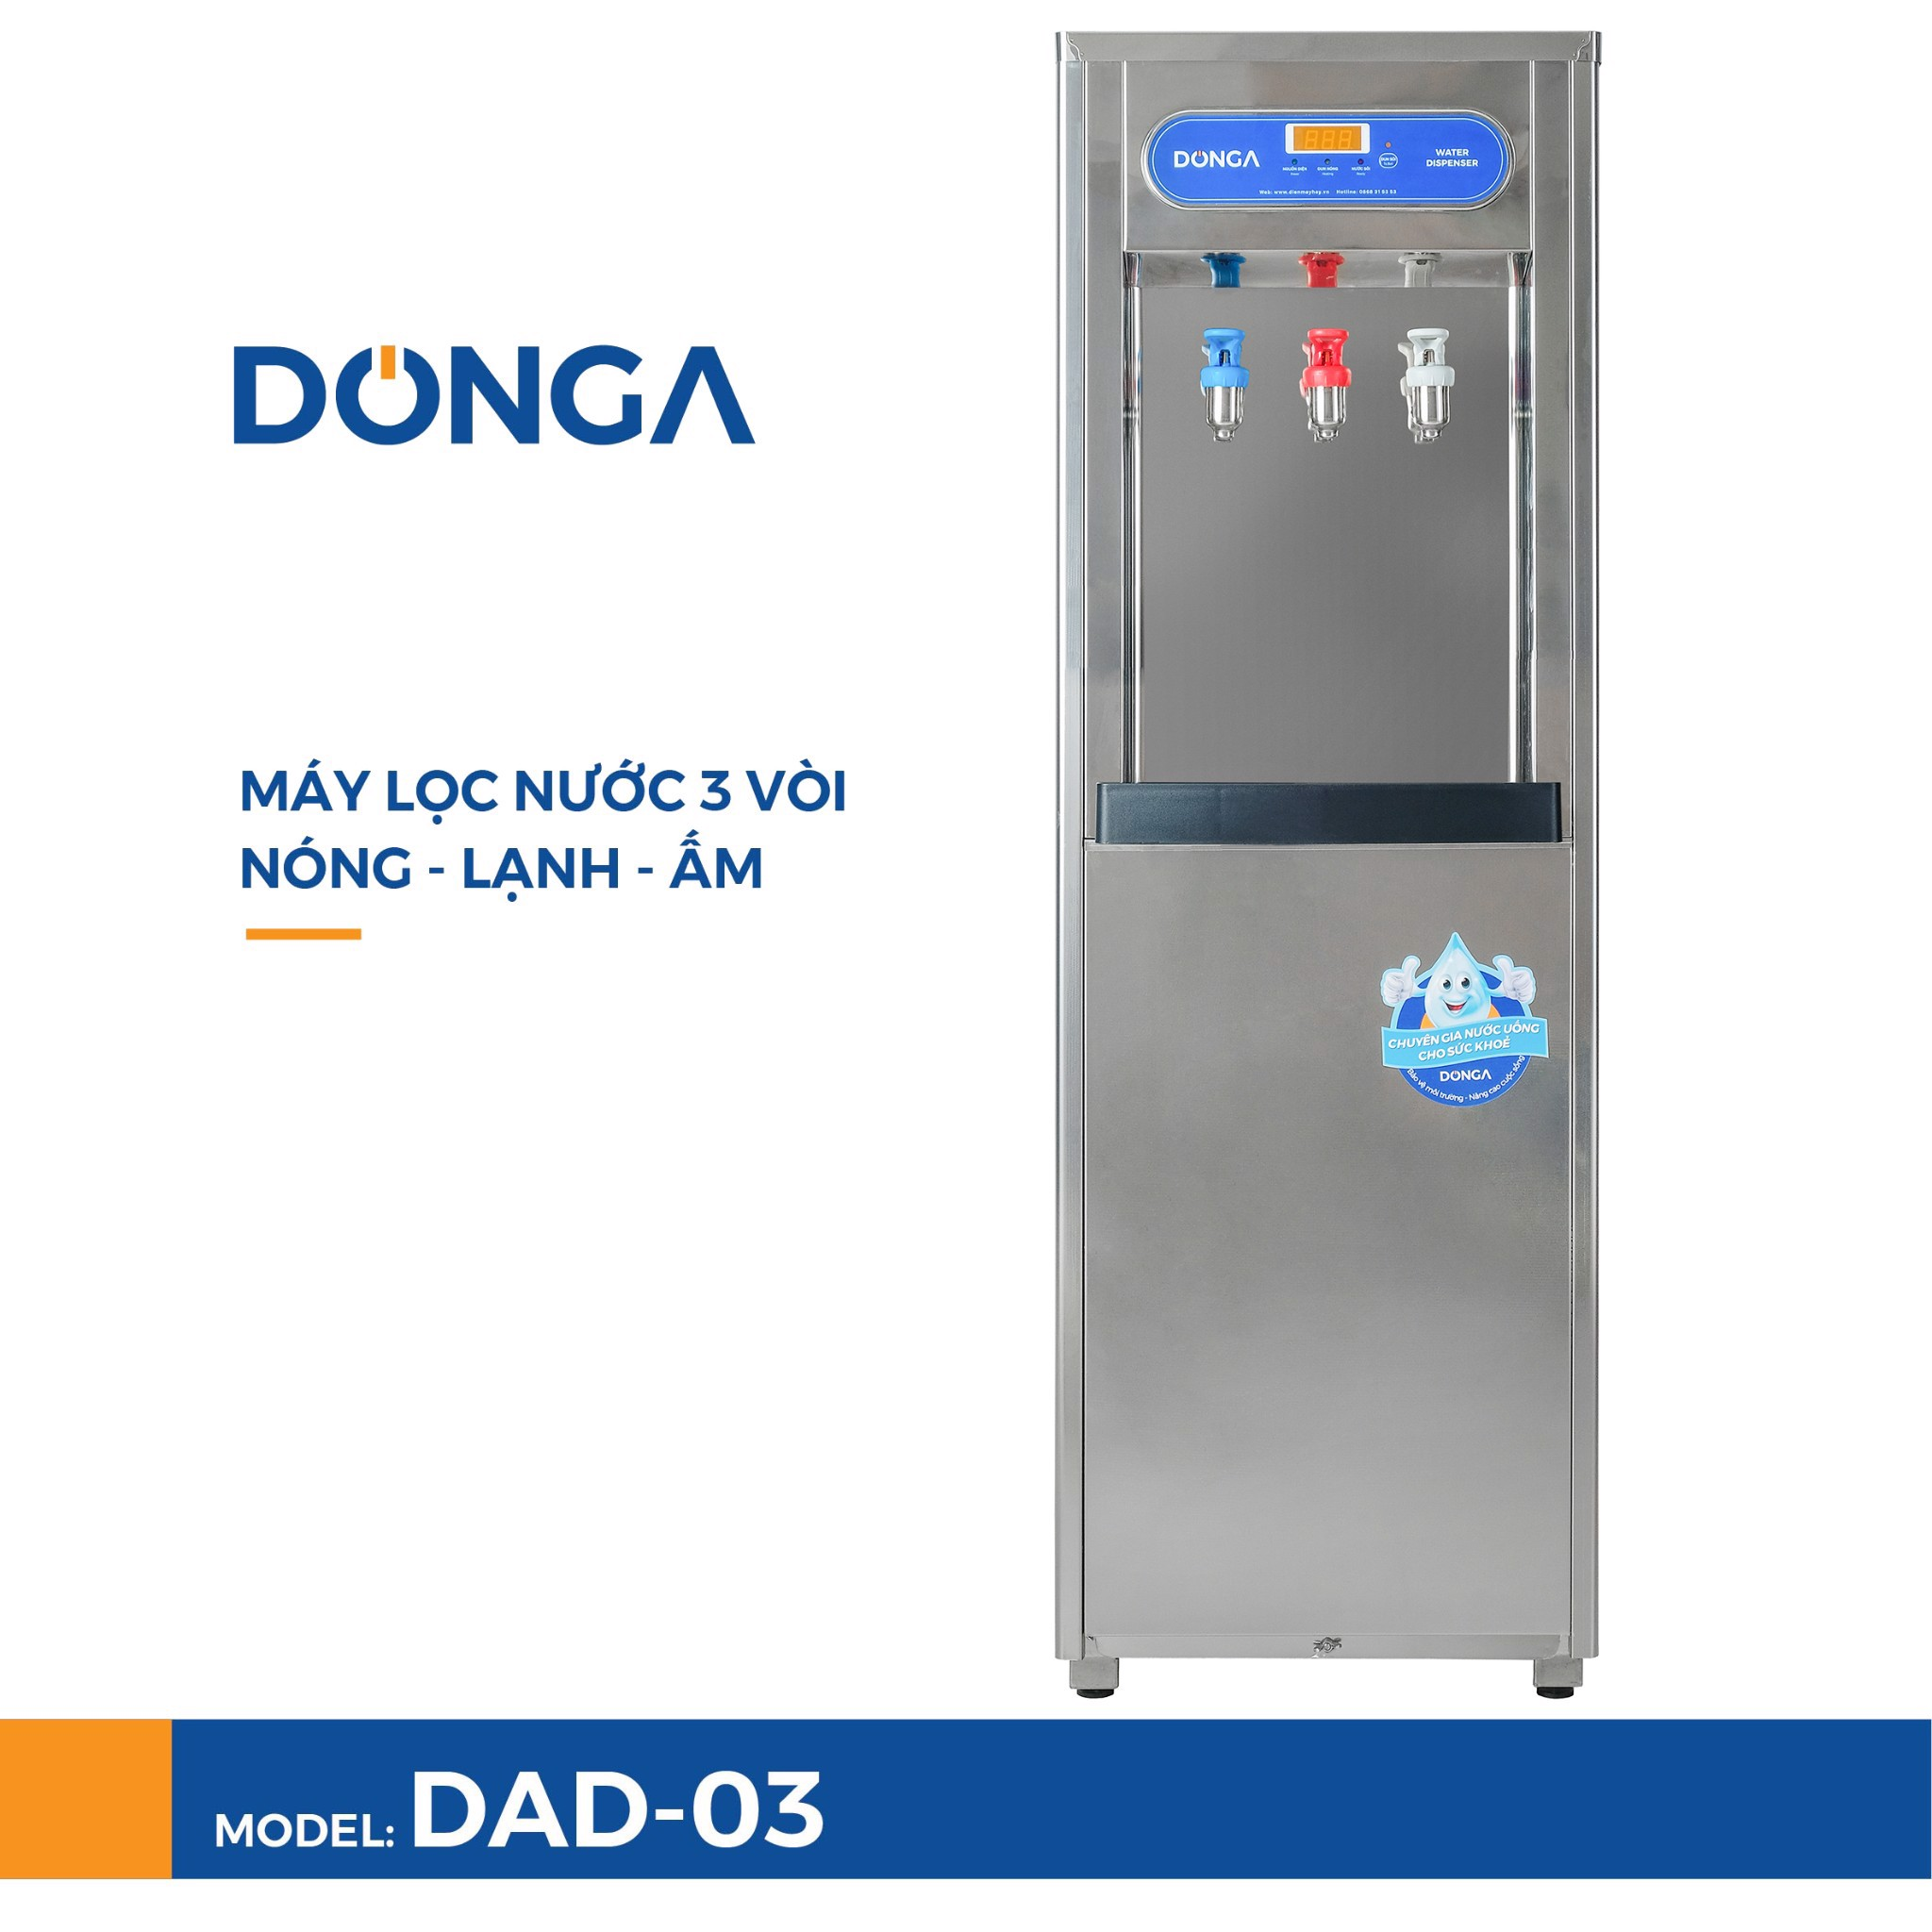 may loc nuoc 3 voi nong lanh am donga dad 03